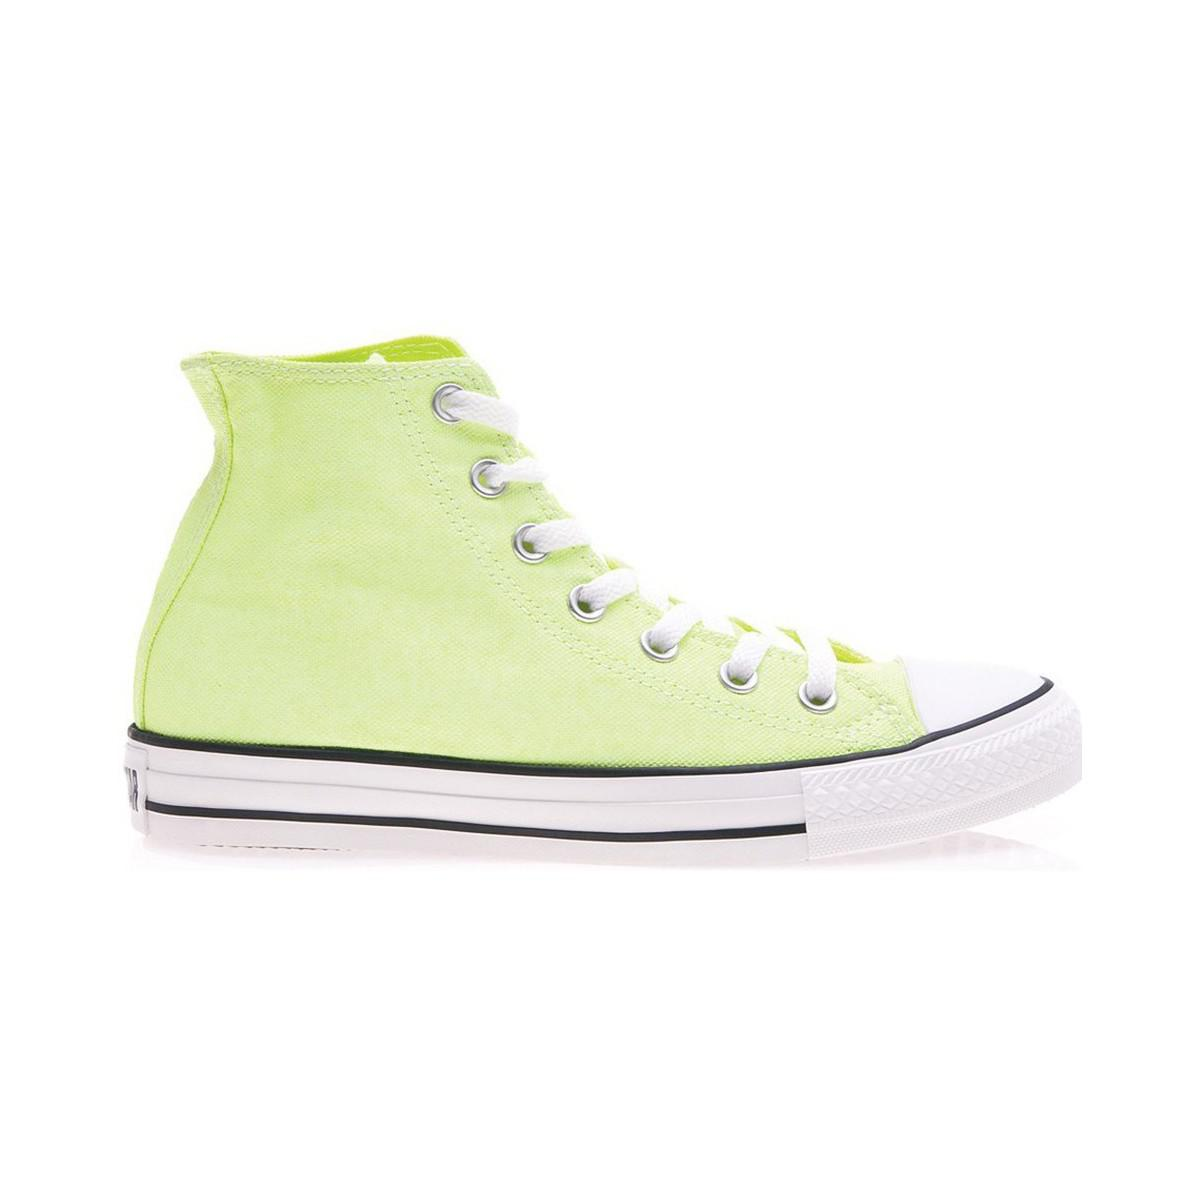 Converse - Multicolor Neon Yellow Women s Shoes (high-top Trainers) In  Multicolour -. View fullscreen a67190c27